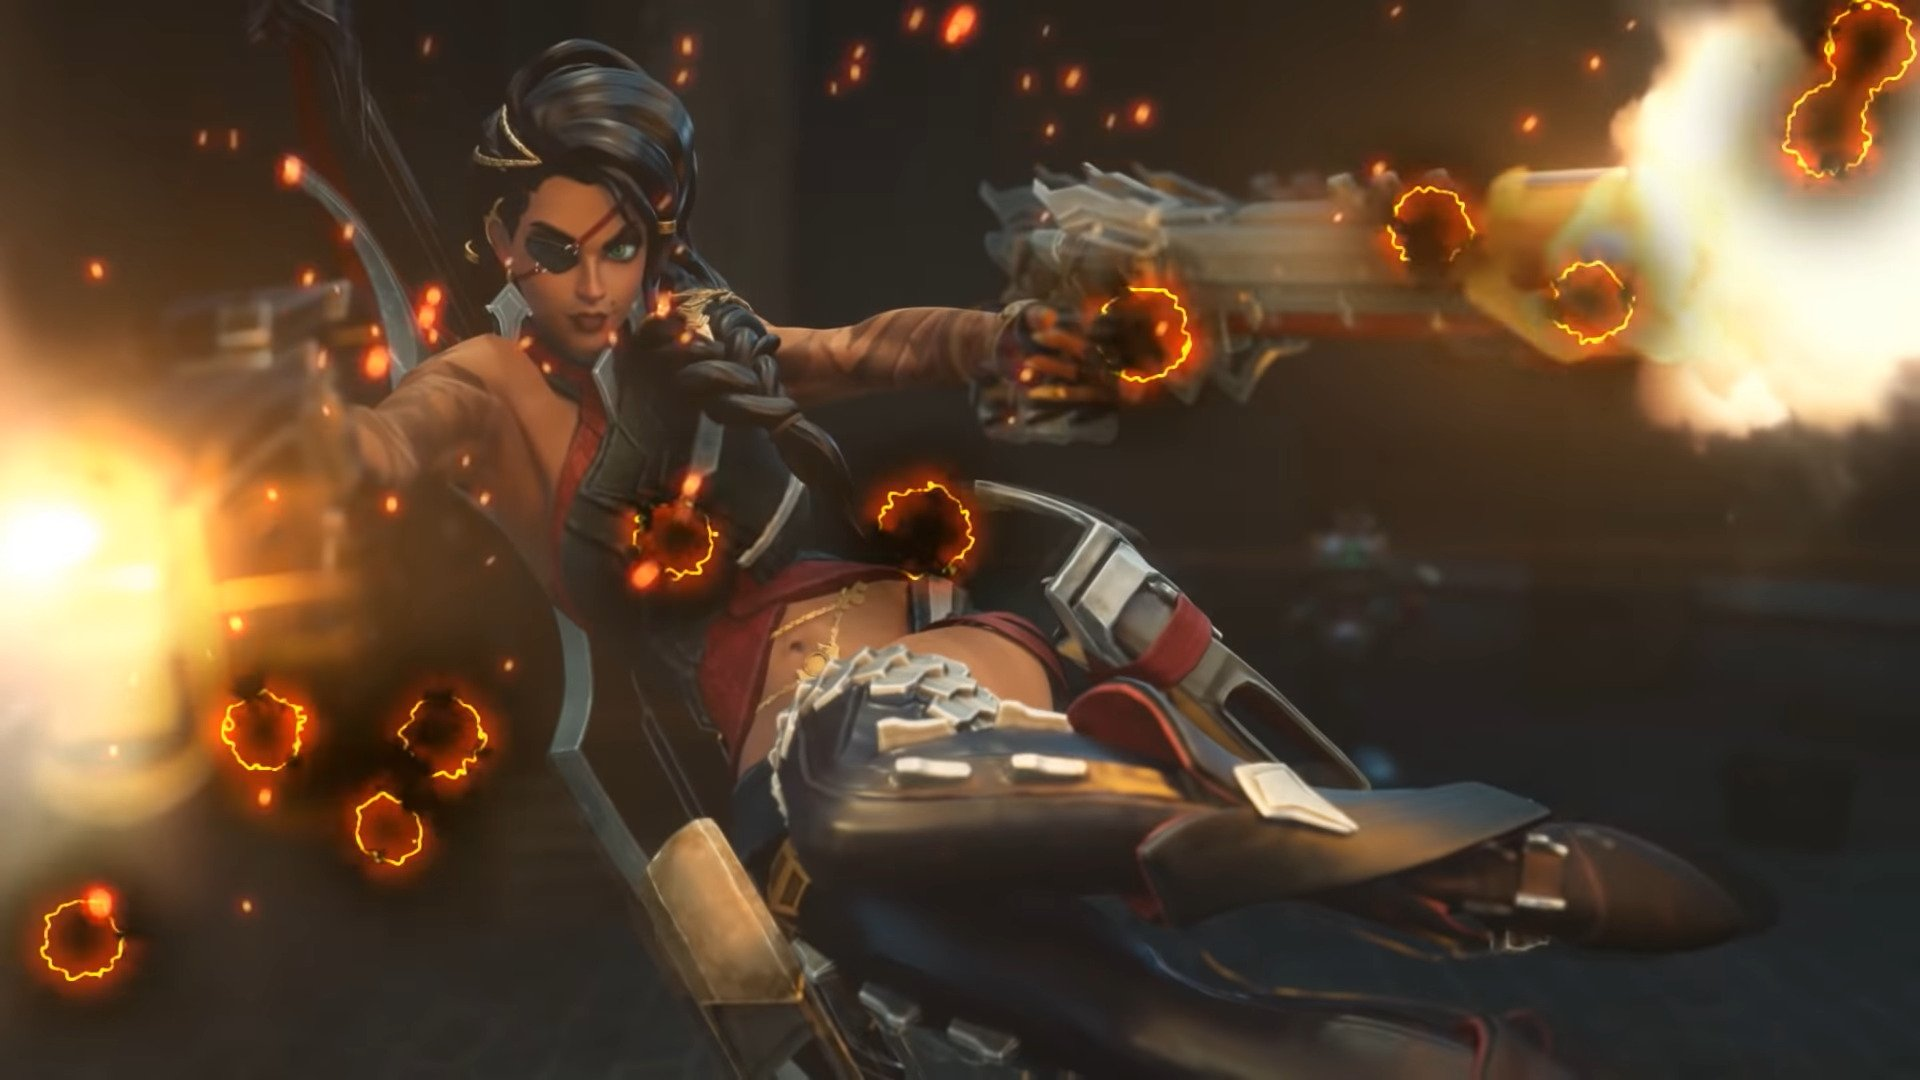 Samira Has One The Highest Ban Rates Following Her Release, Putting Doubt Whether We Will Get Balanced Champions In The Future